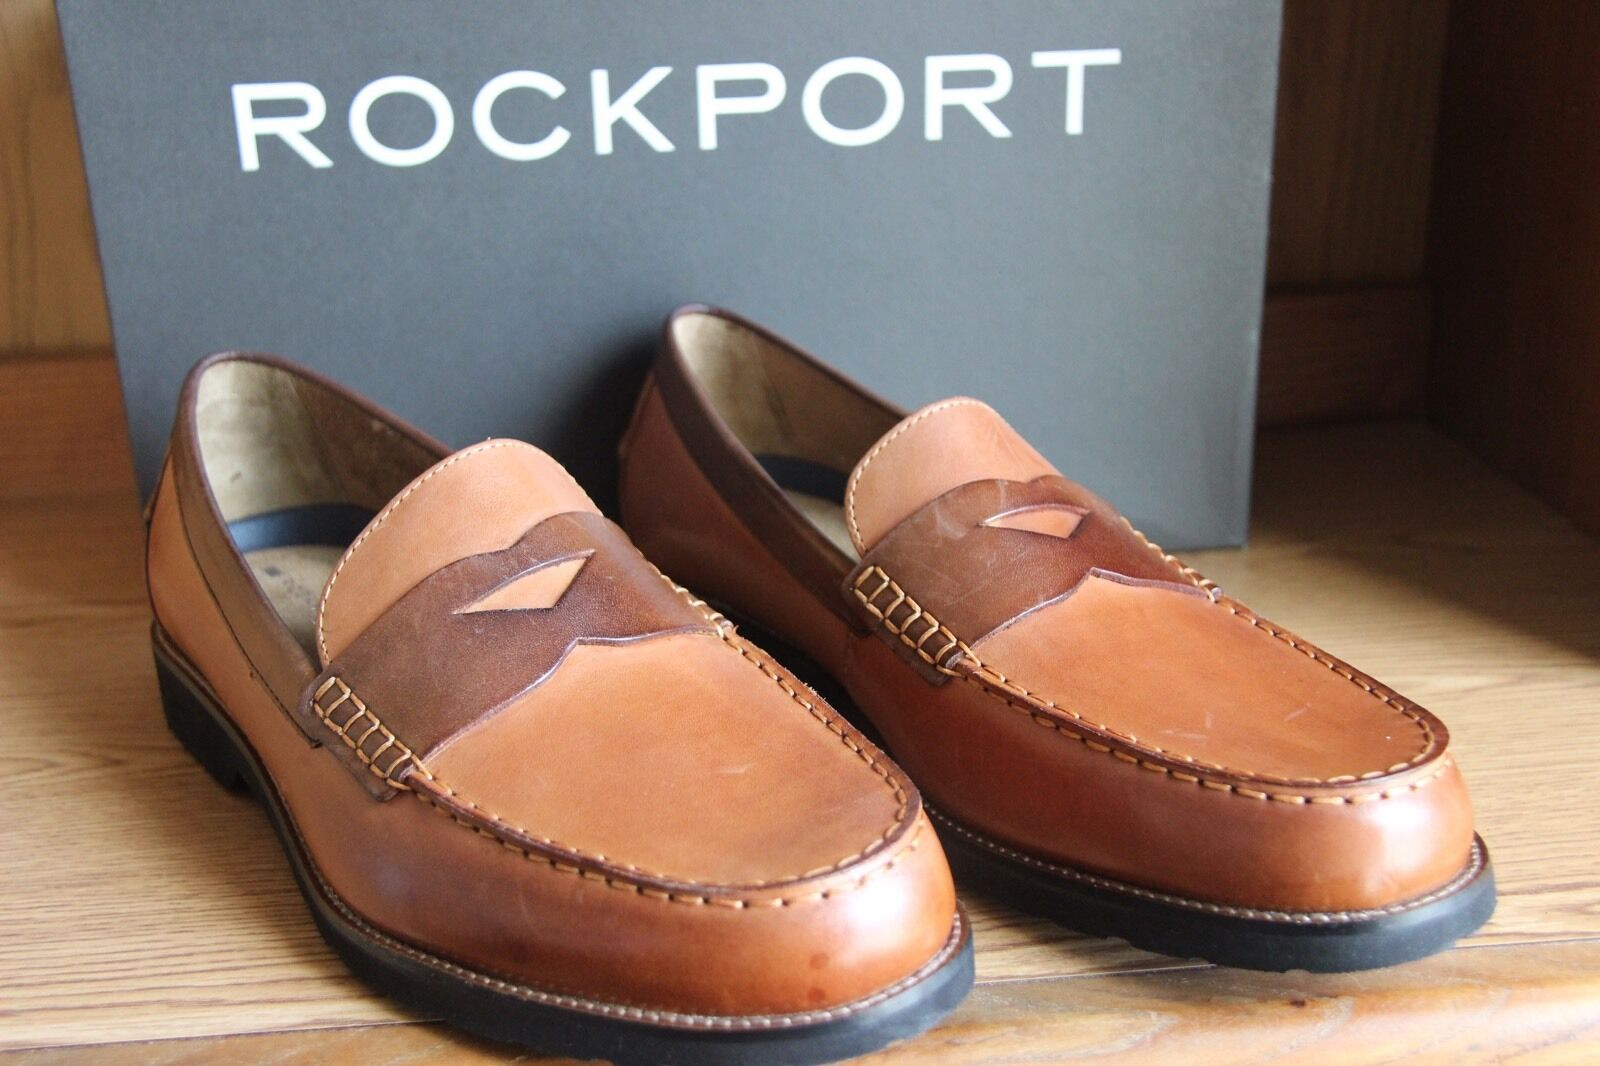 8d7dcfc452b Rockport Classic Move Penny Loafers Shoes Tan Cognac Men Size 12 ...